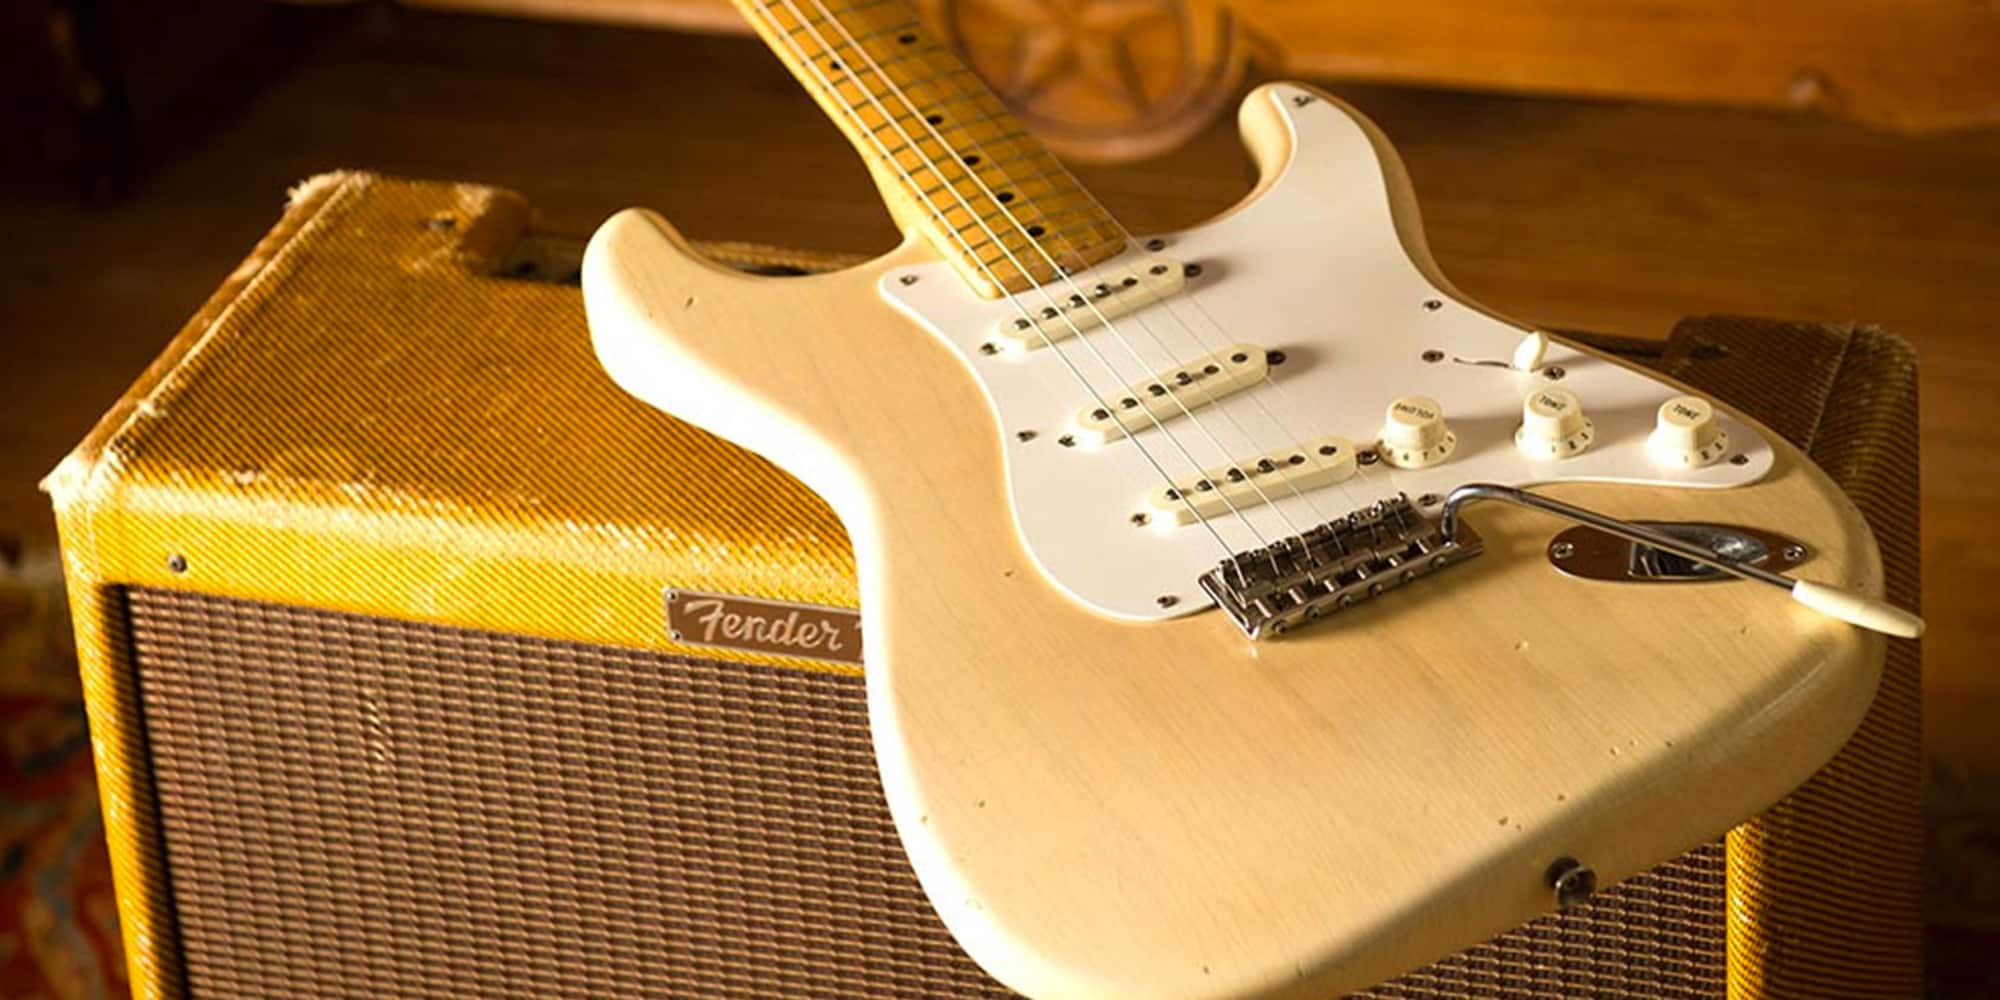 Stratocaster Guide Which Strat To Buy Model Comparison Fender >> Stratocaster Buying Guide Find The Right Strat For You Reverb